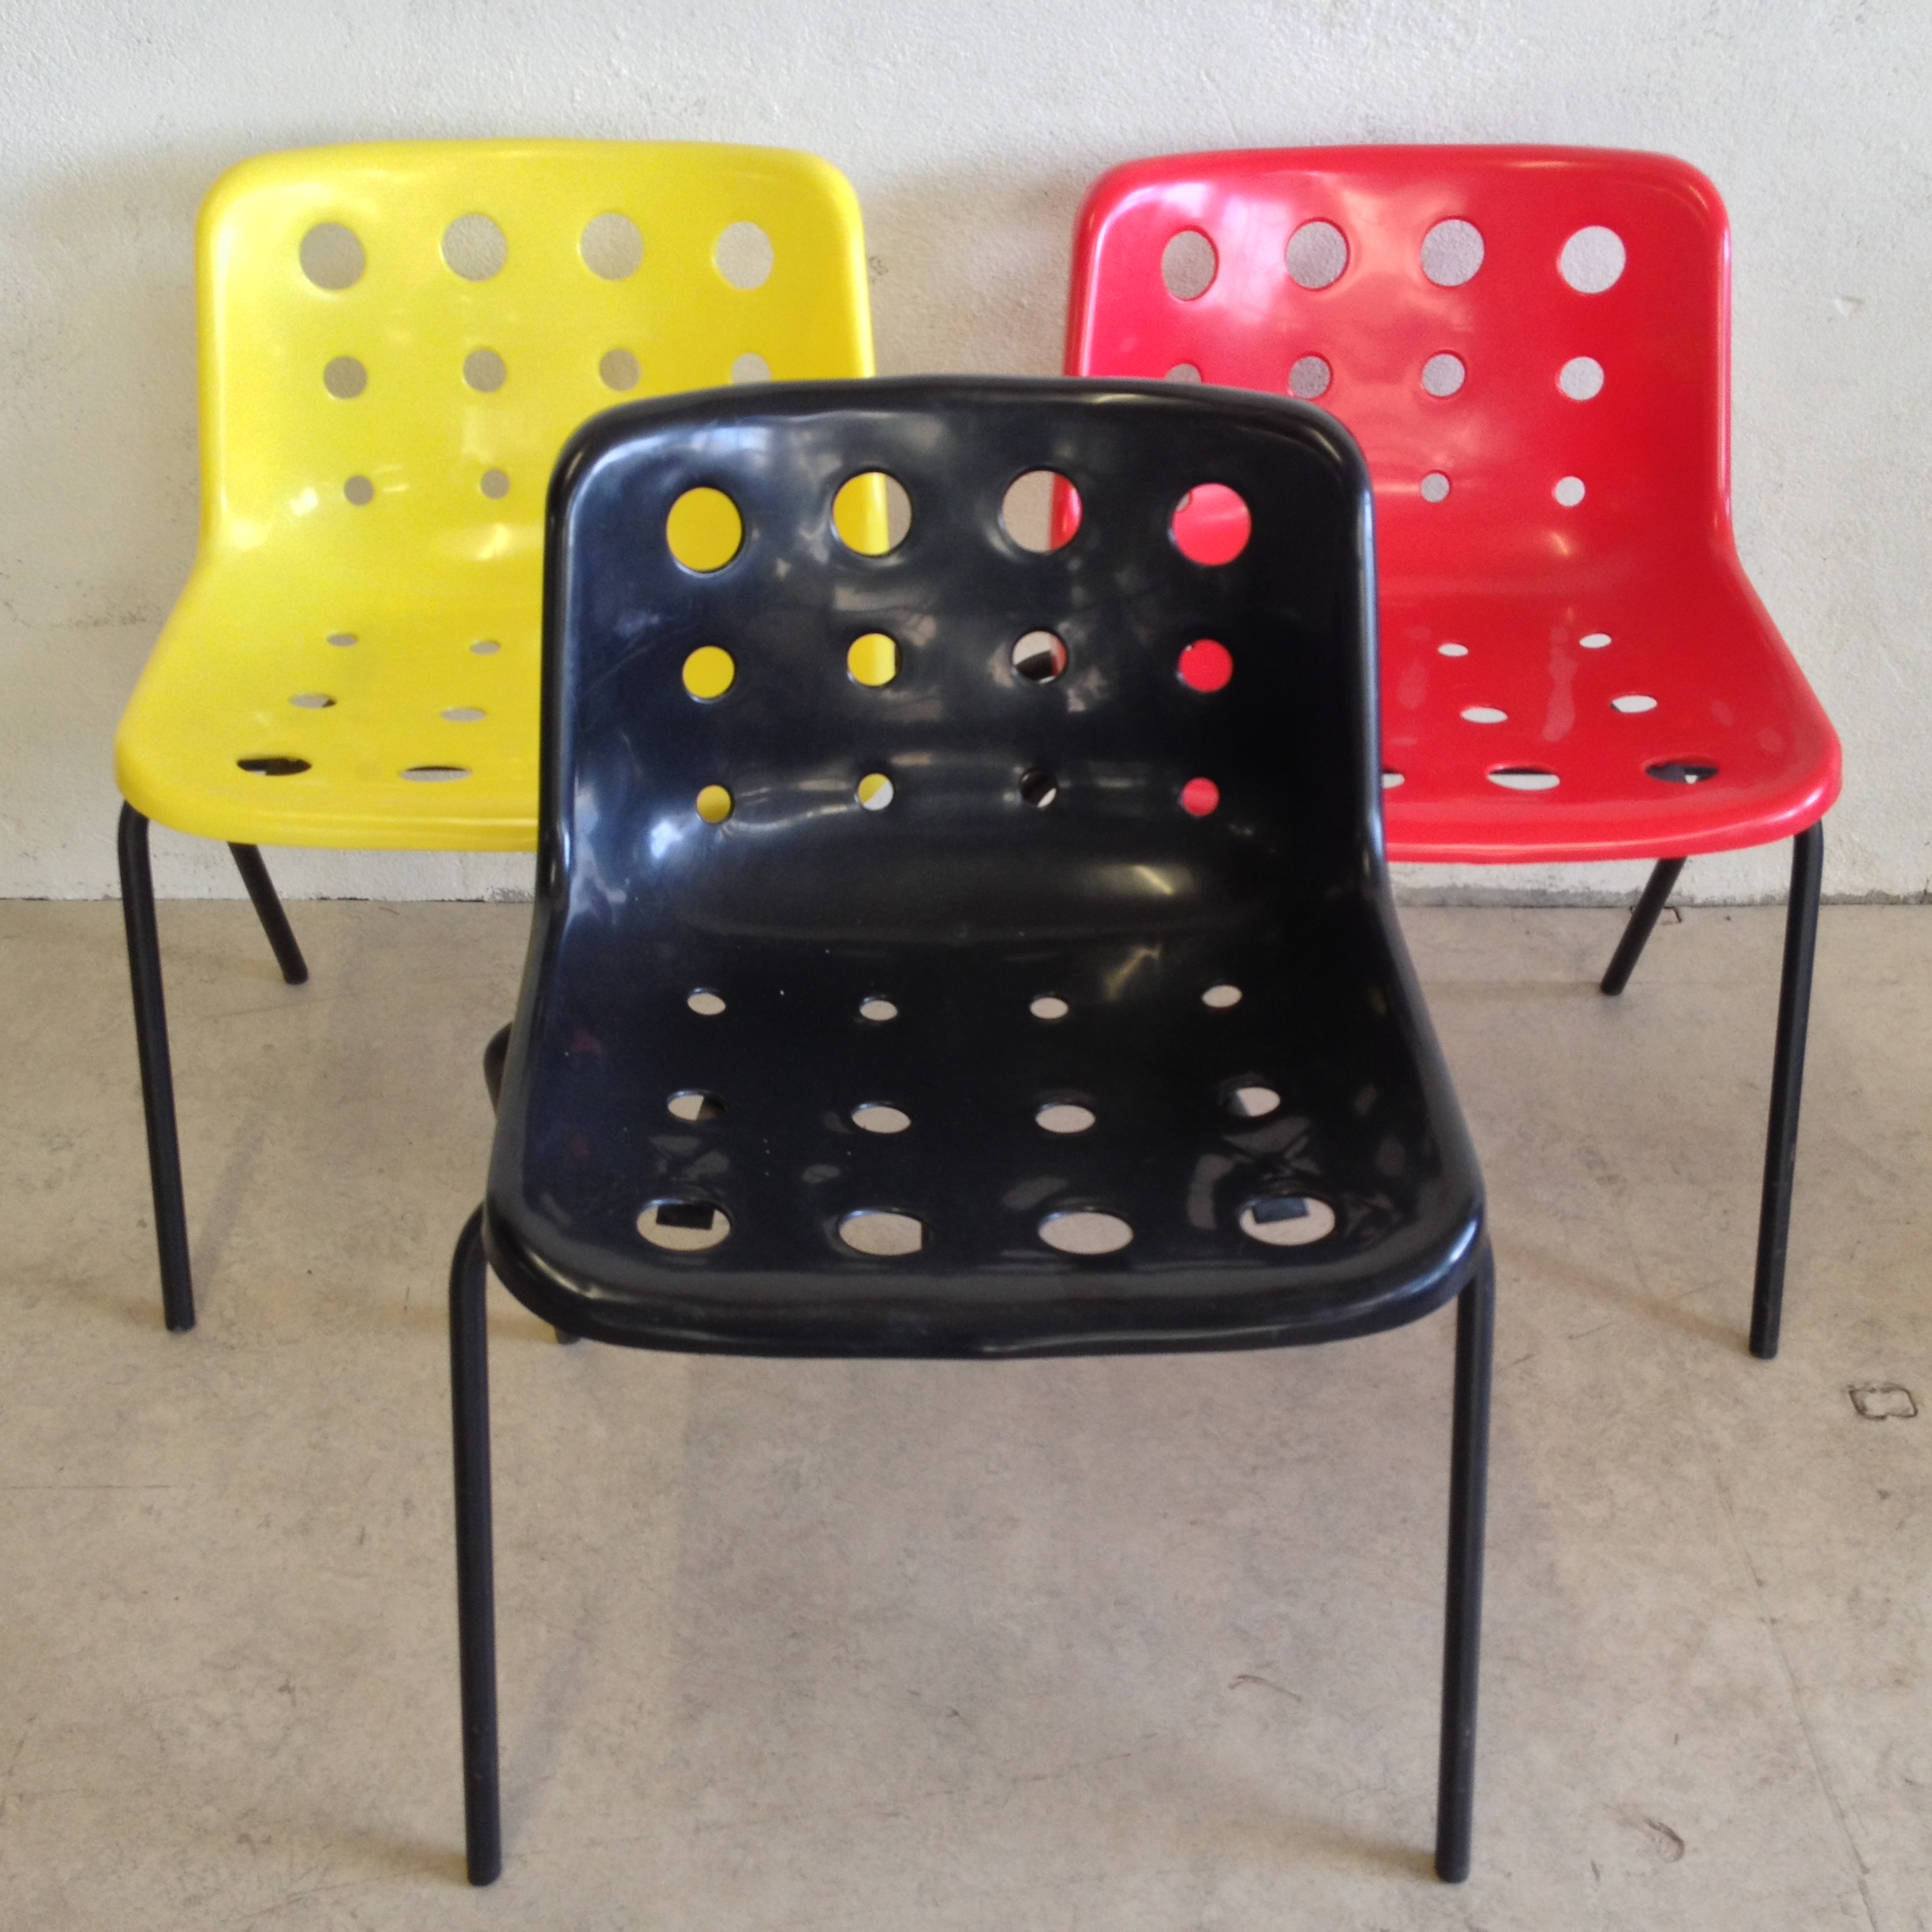 Polo chairs by Robin Day Tasteful Objects TOINC : Robin Day stackable chair 2 from toinc.nl size 2448 x 2448 jpeg 1359kB